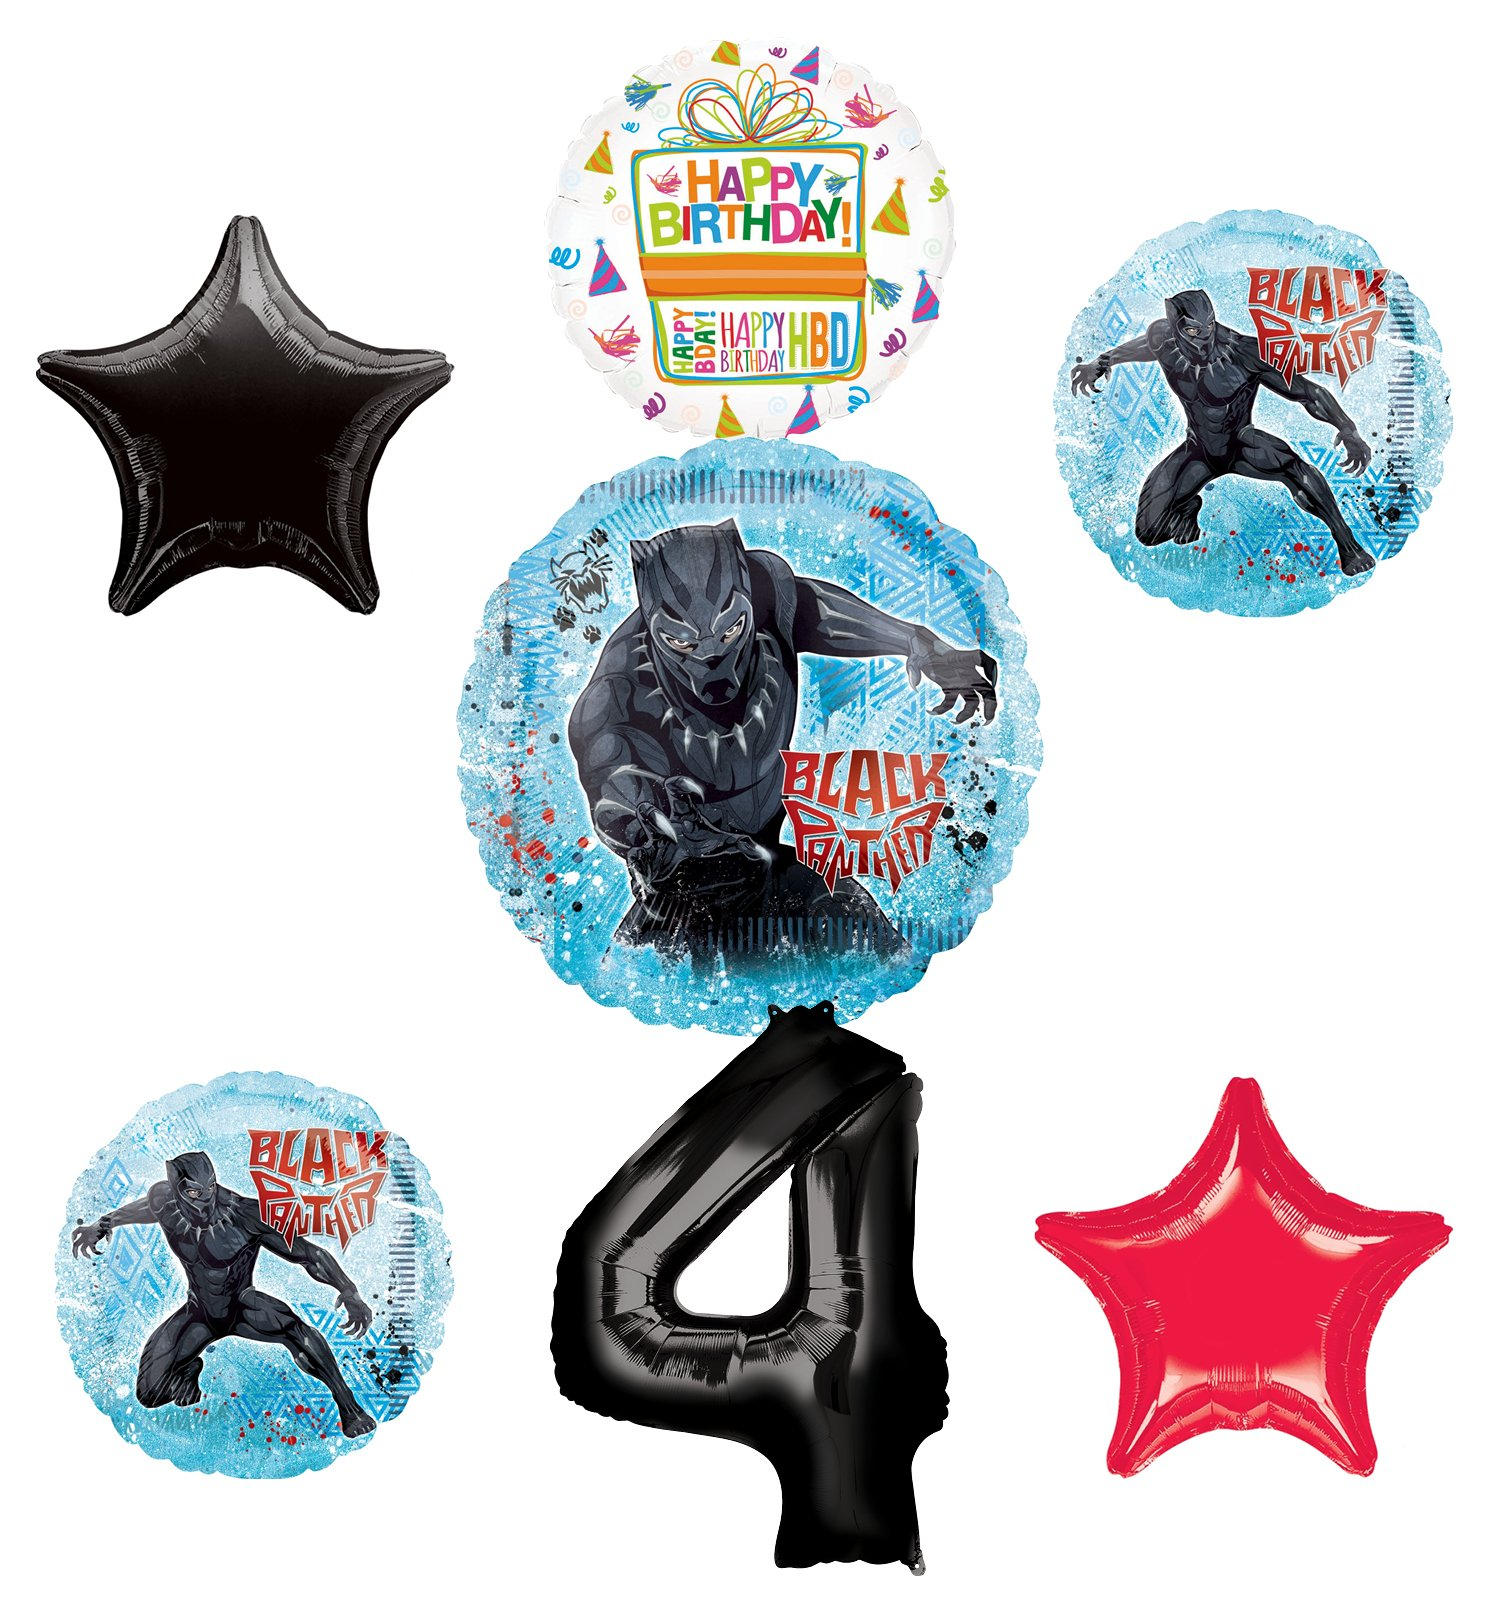 Black Panther Party Supplies 4th Birthday Balloon Bouquet Decorations